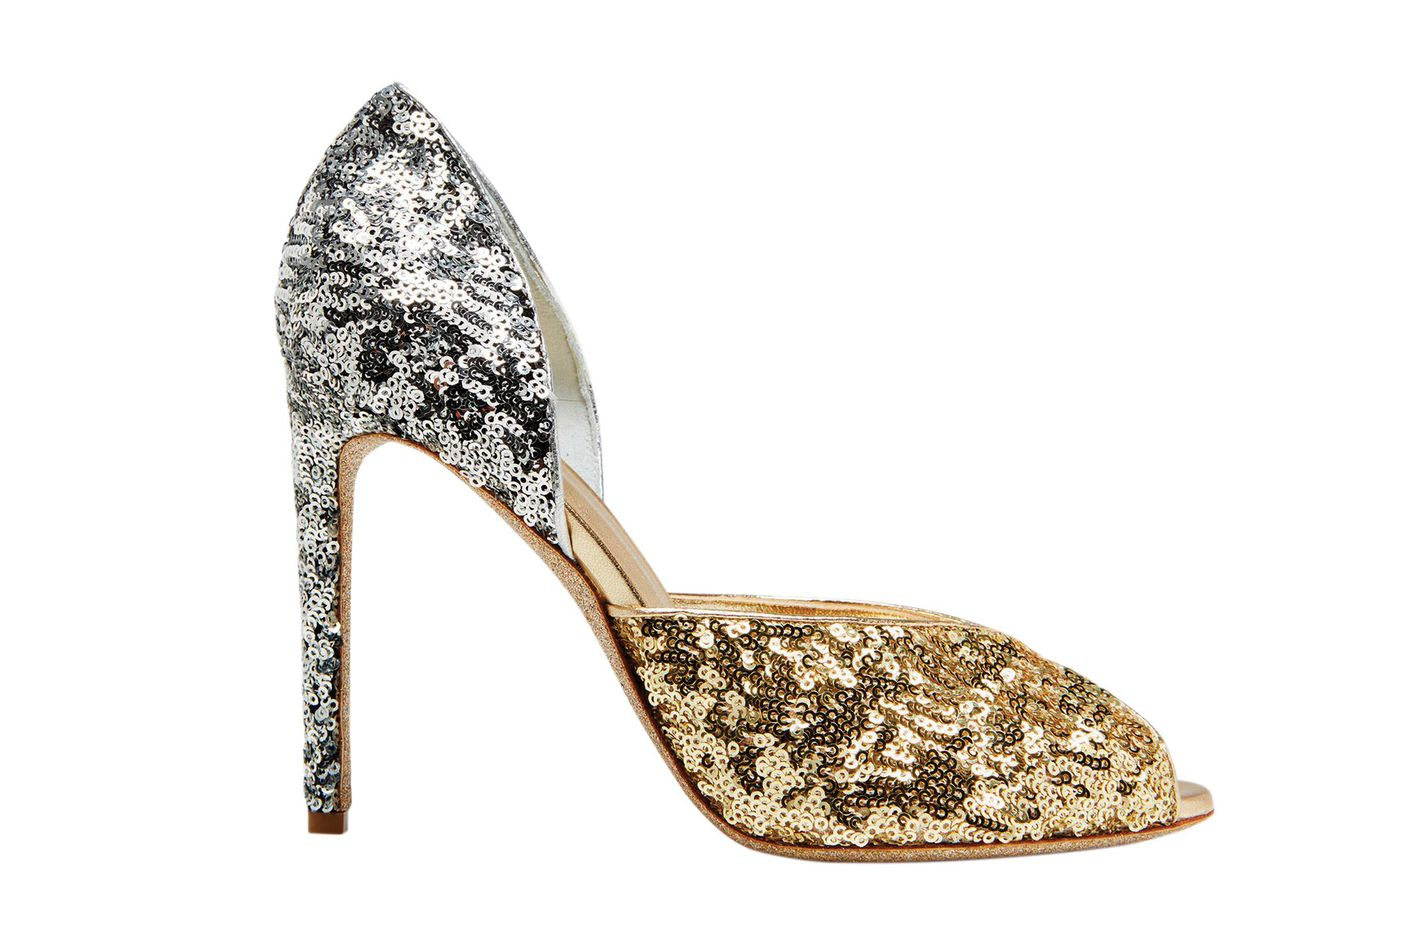 La Perla D'Orsey Shoes